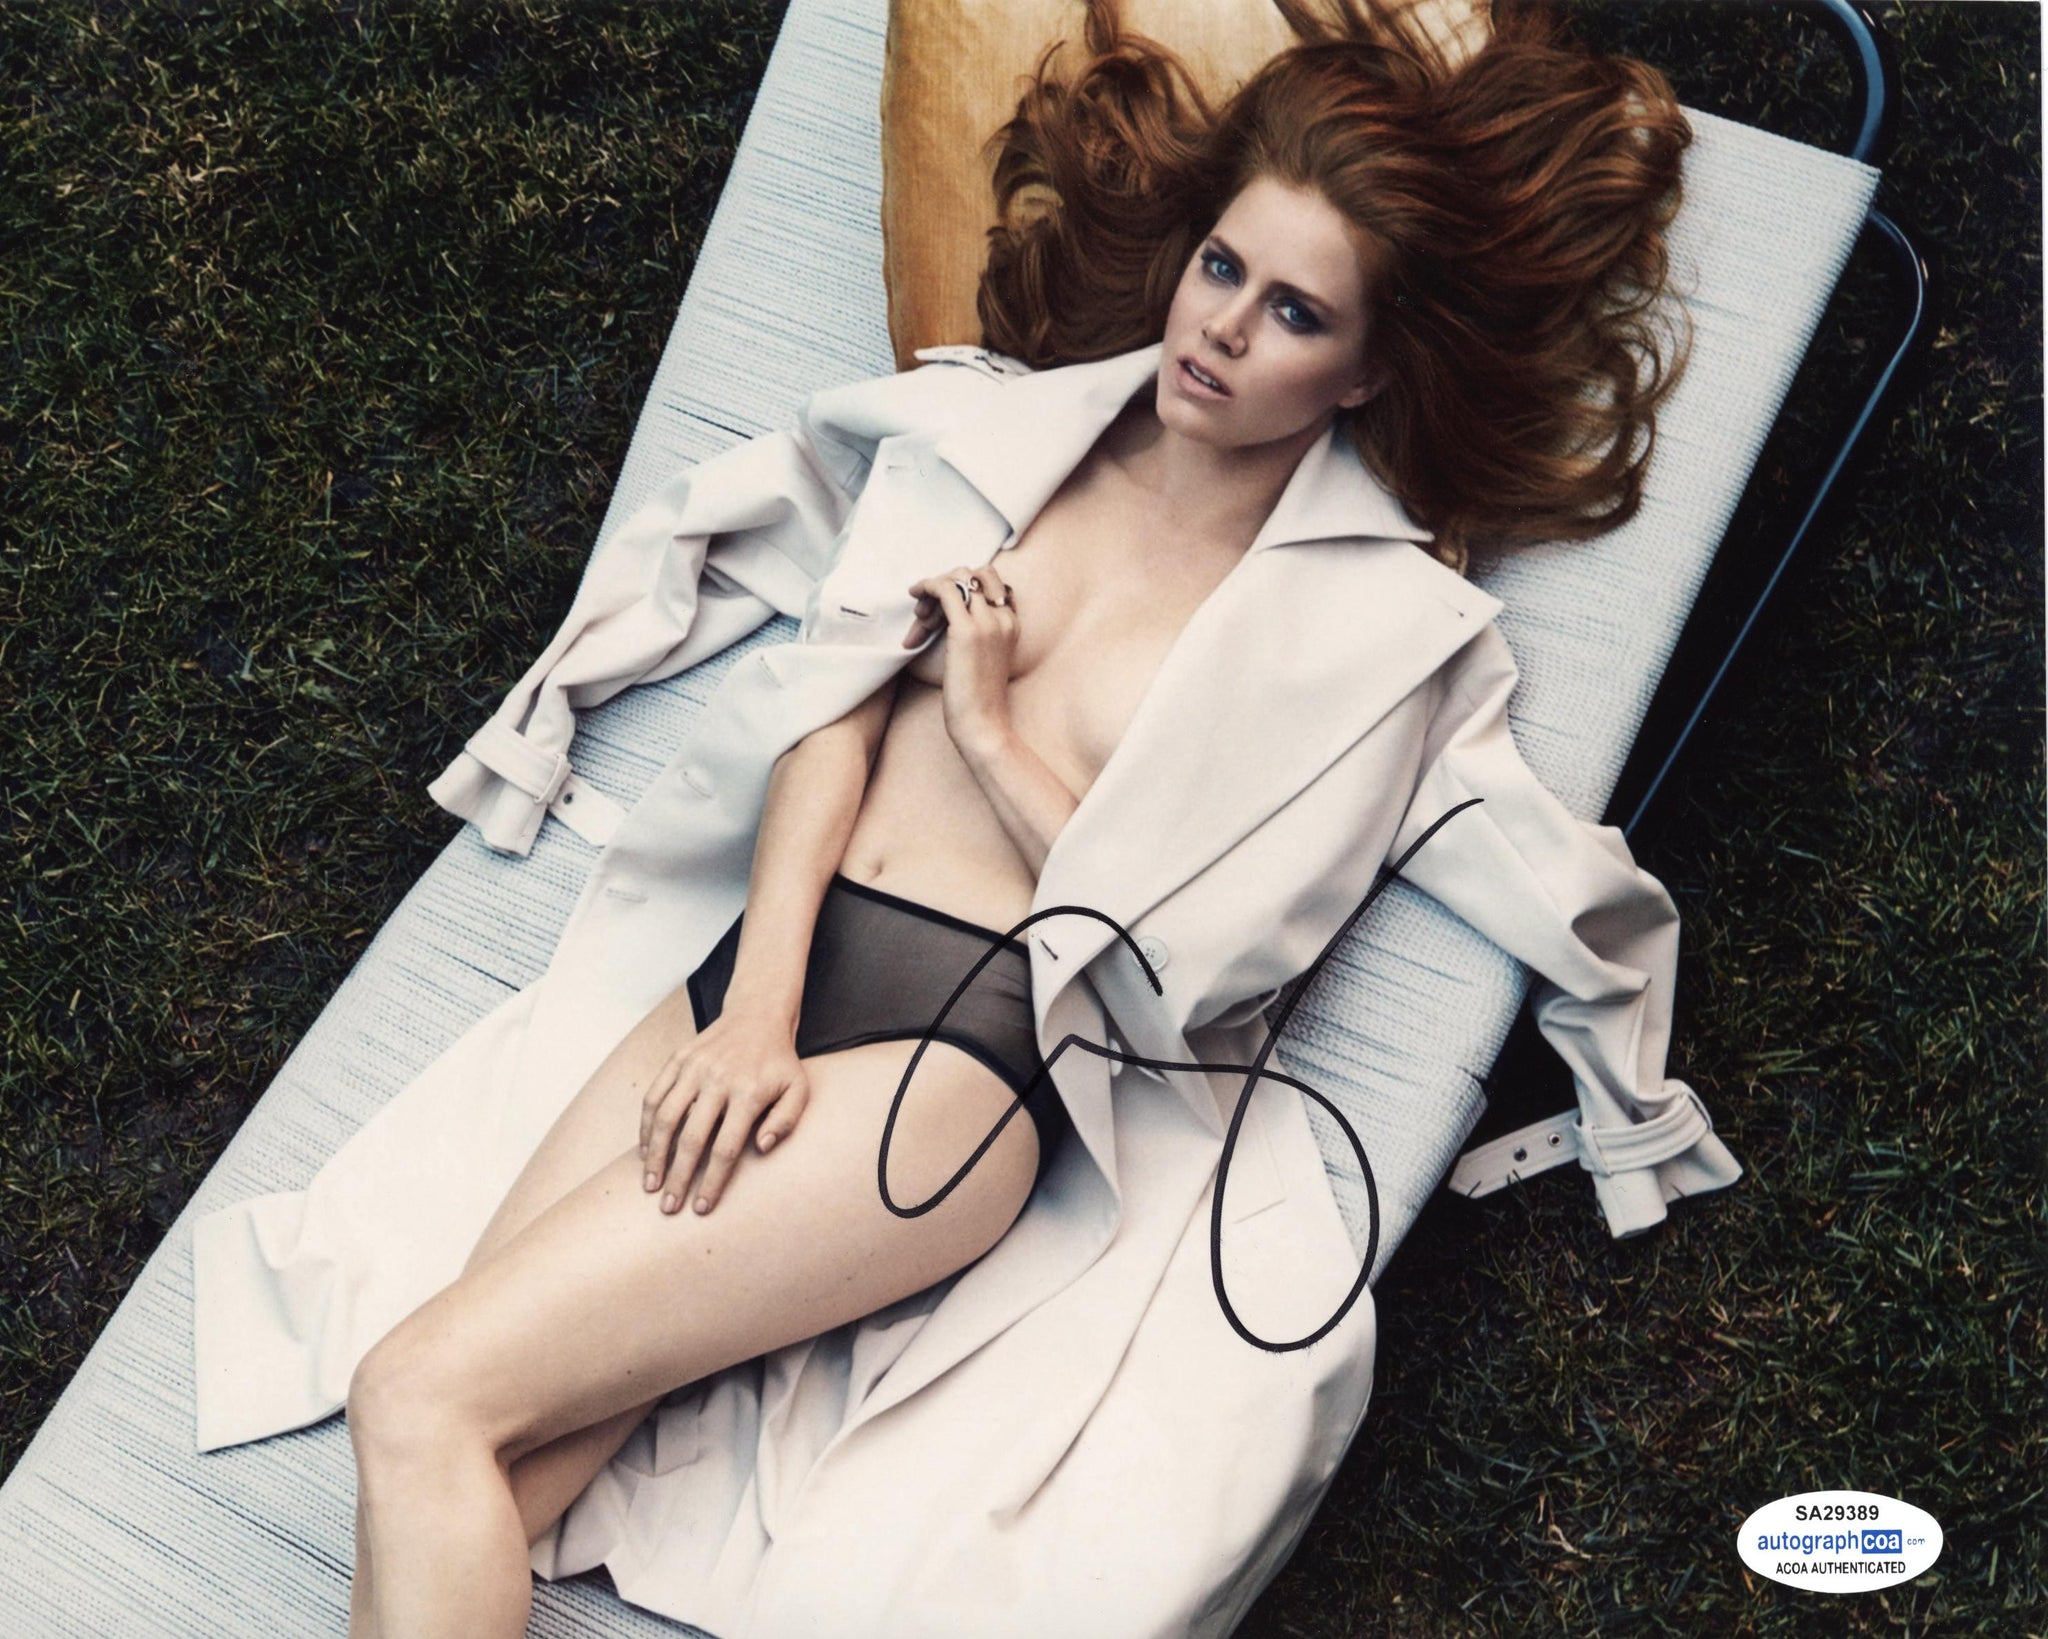 Amy Adams Sexy Signed Autograph 8x10 Photo ACOA #9 - Outlaw Hobbies Authentic Autographs